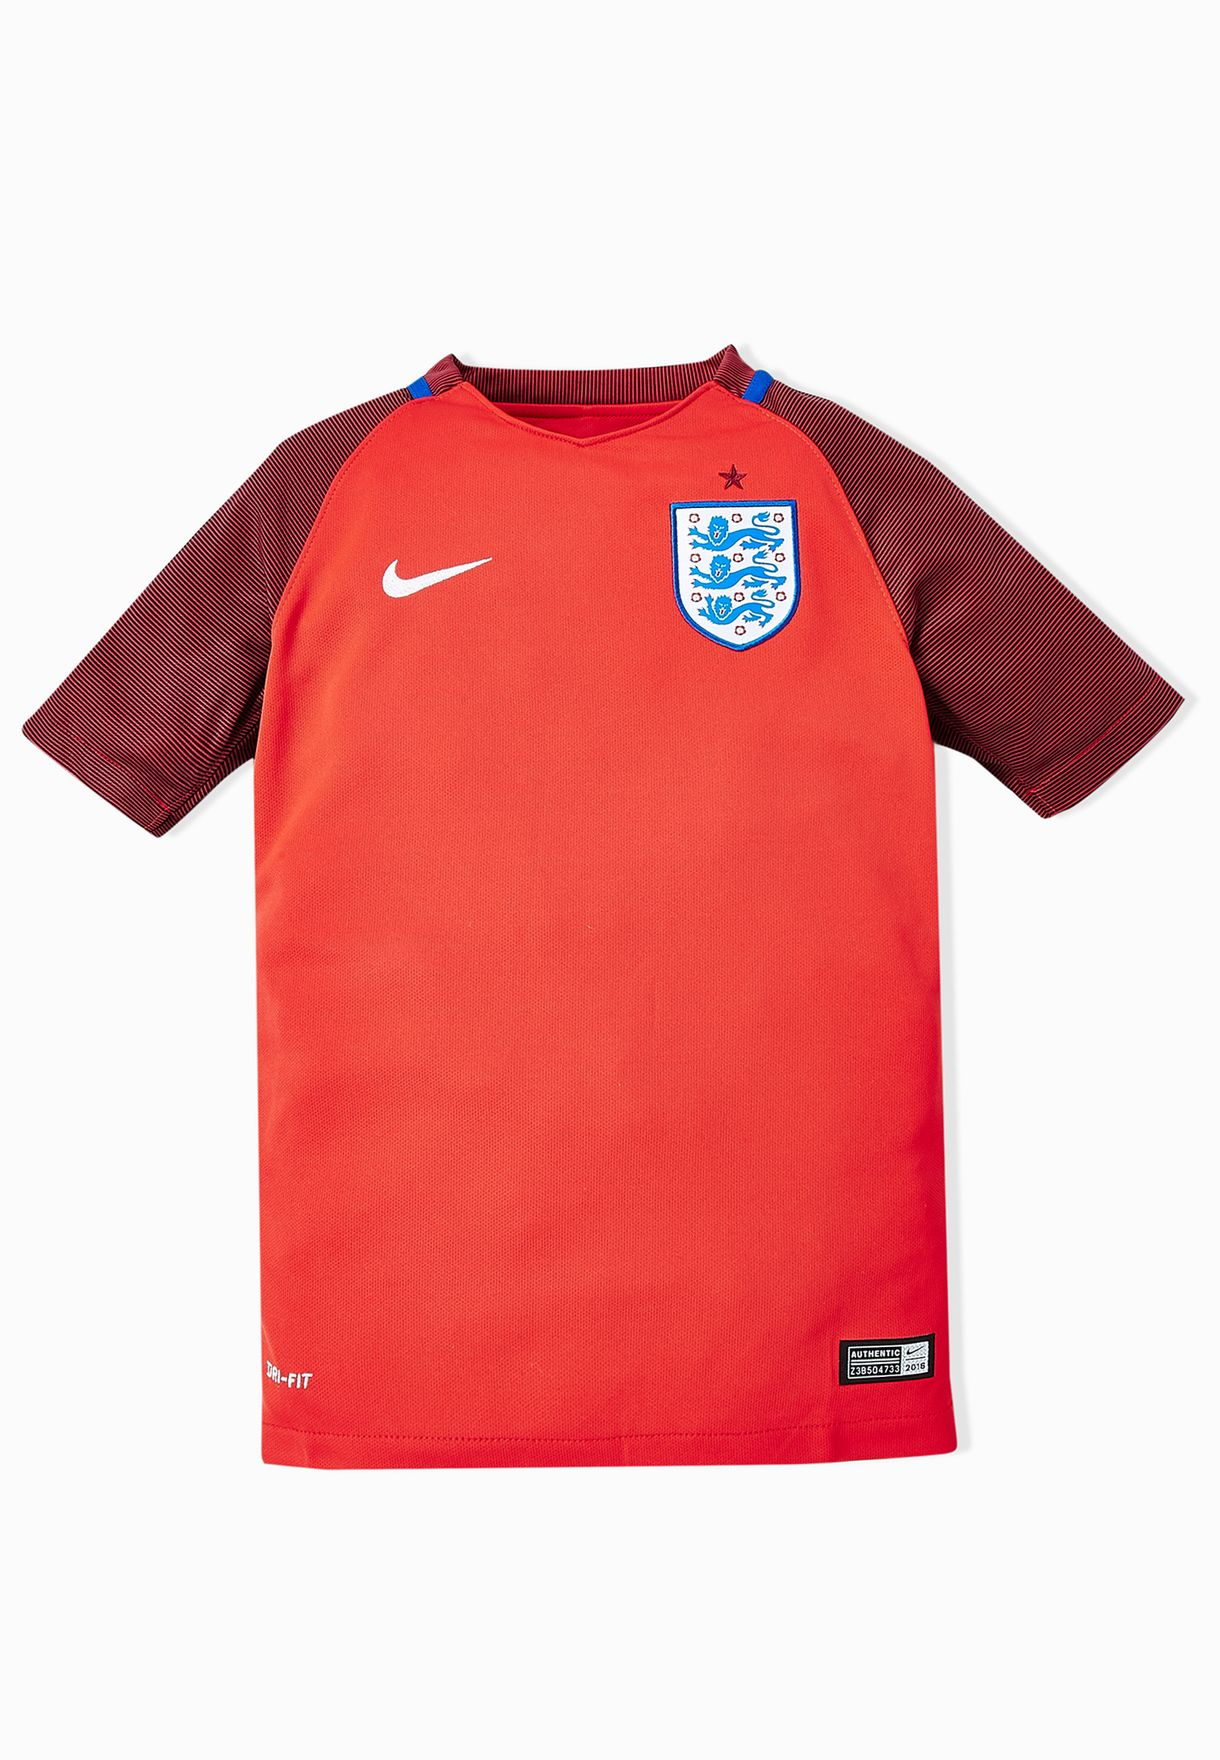 0612a8205cd Shop Nike red Youth England Away Stadium Jersey 724693-600 for Kids ...